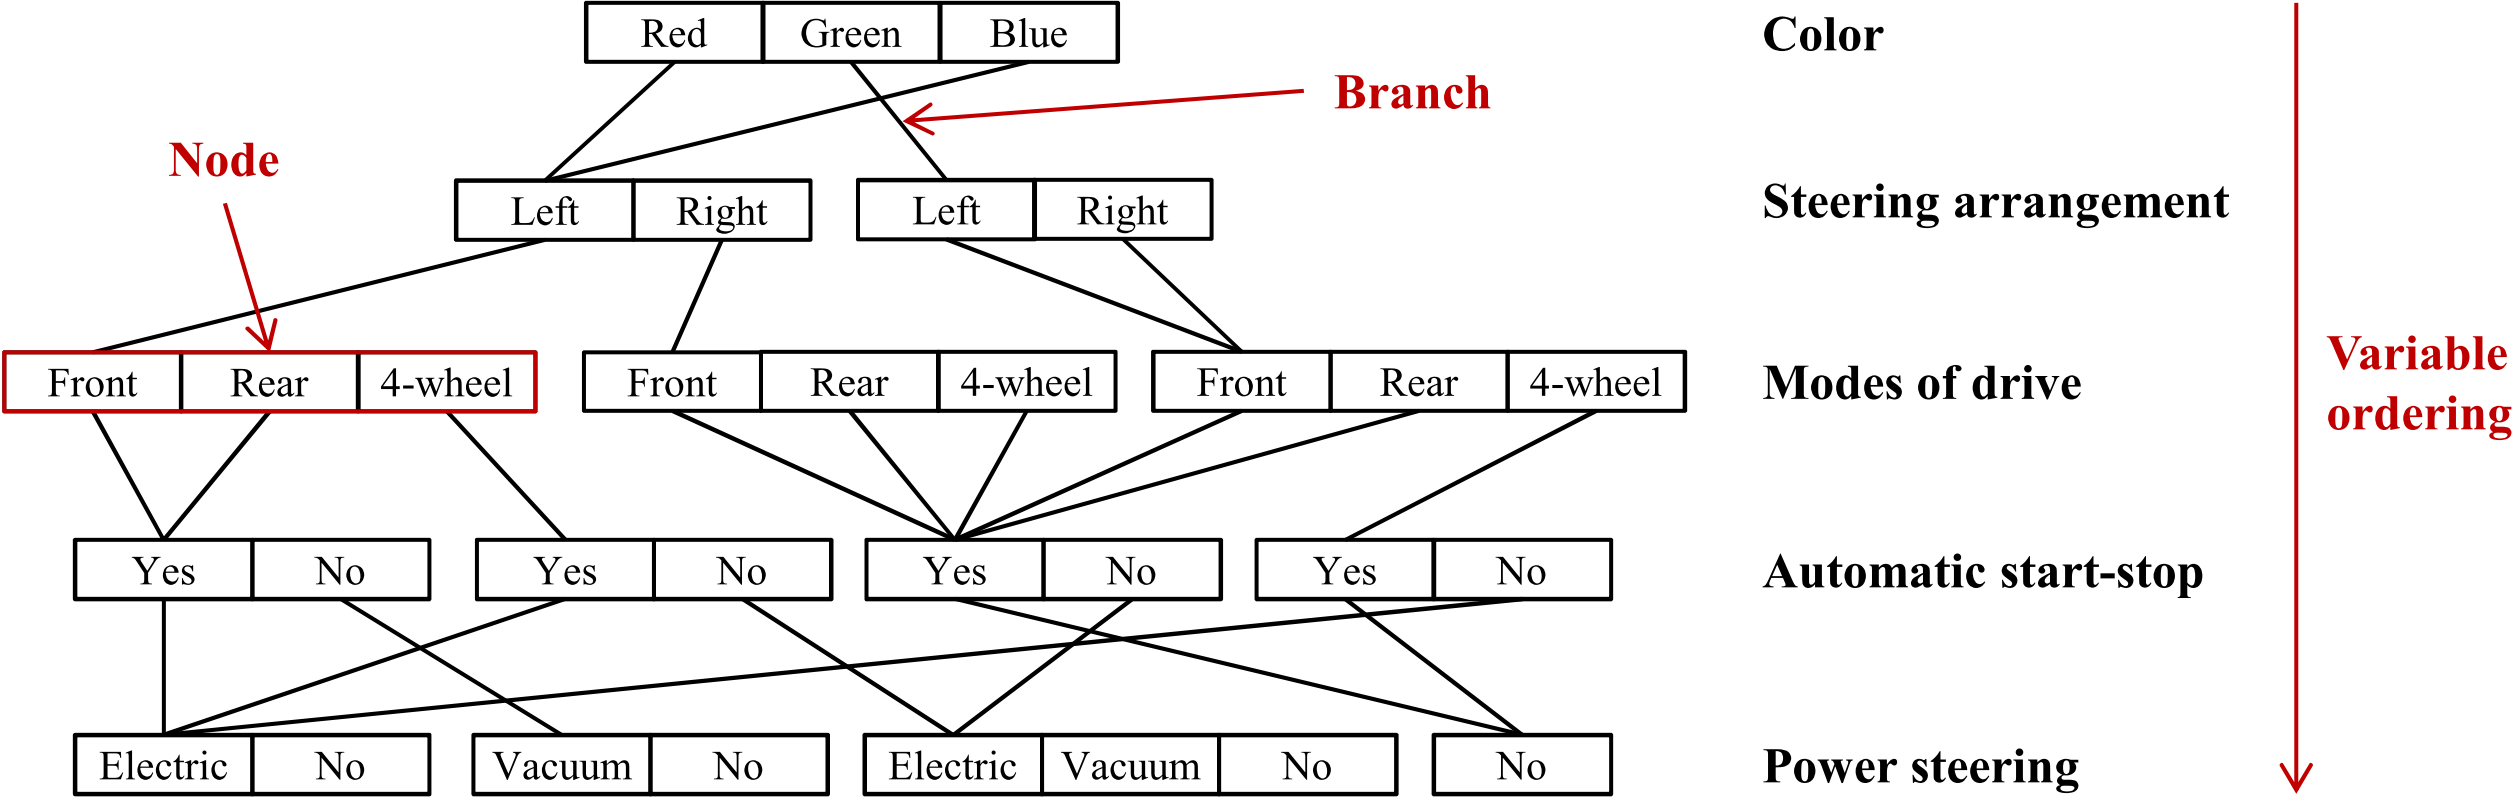 Project Picture - Data Quality and the Control of Automotive Manufacturing